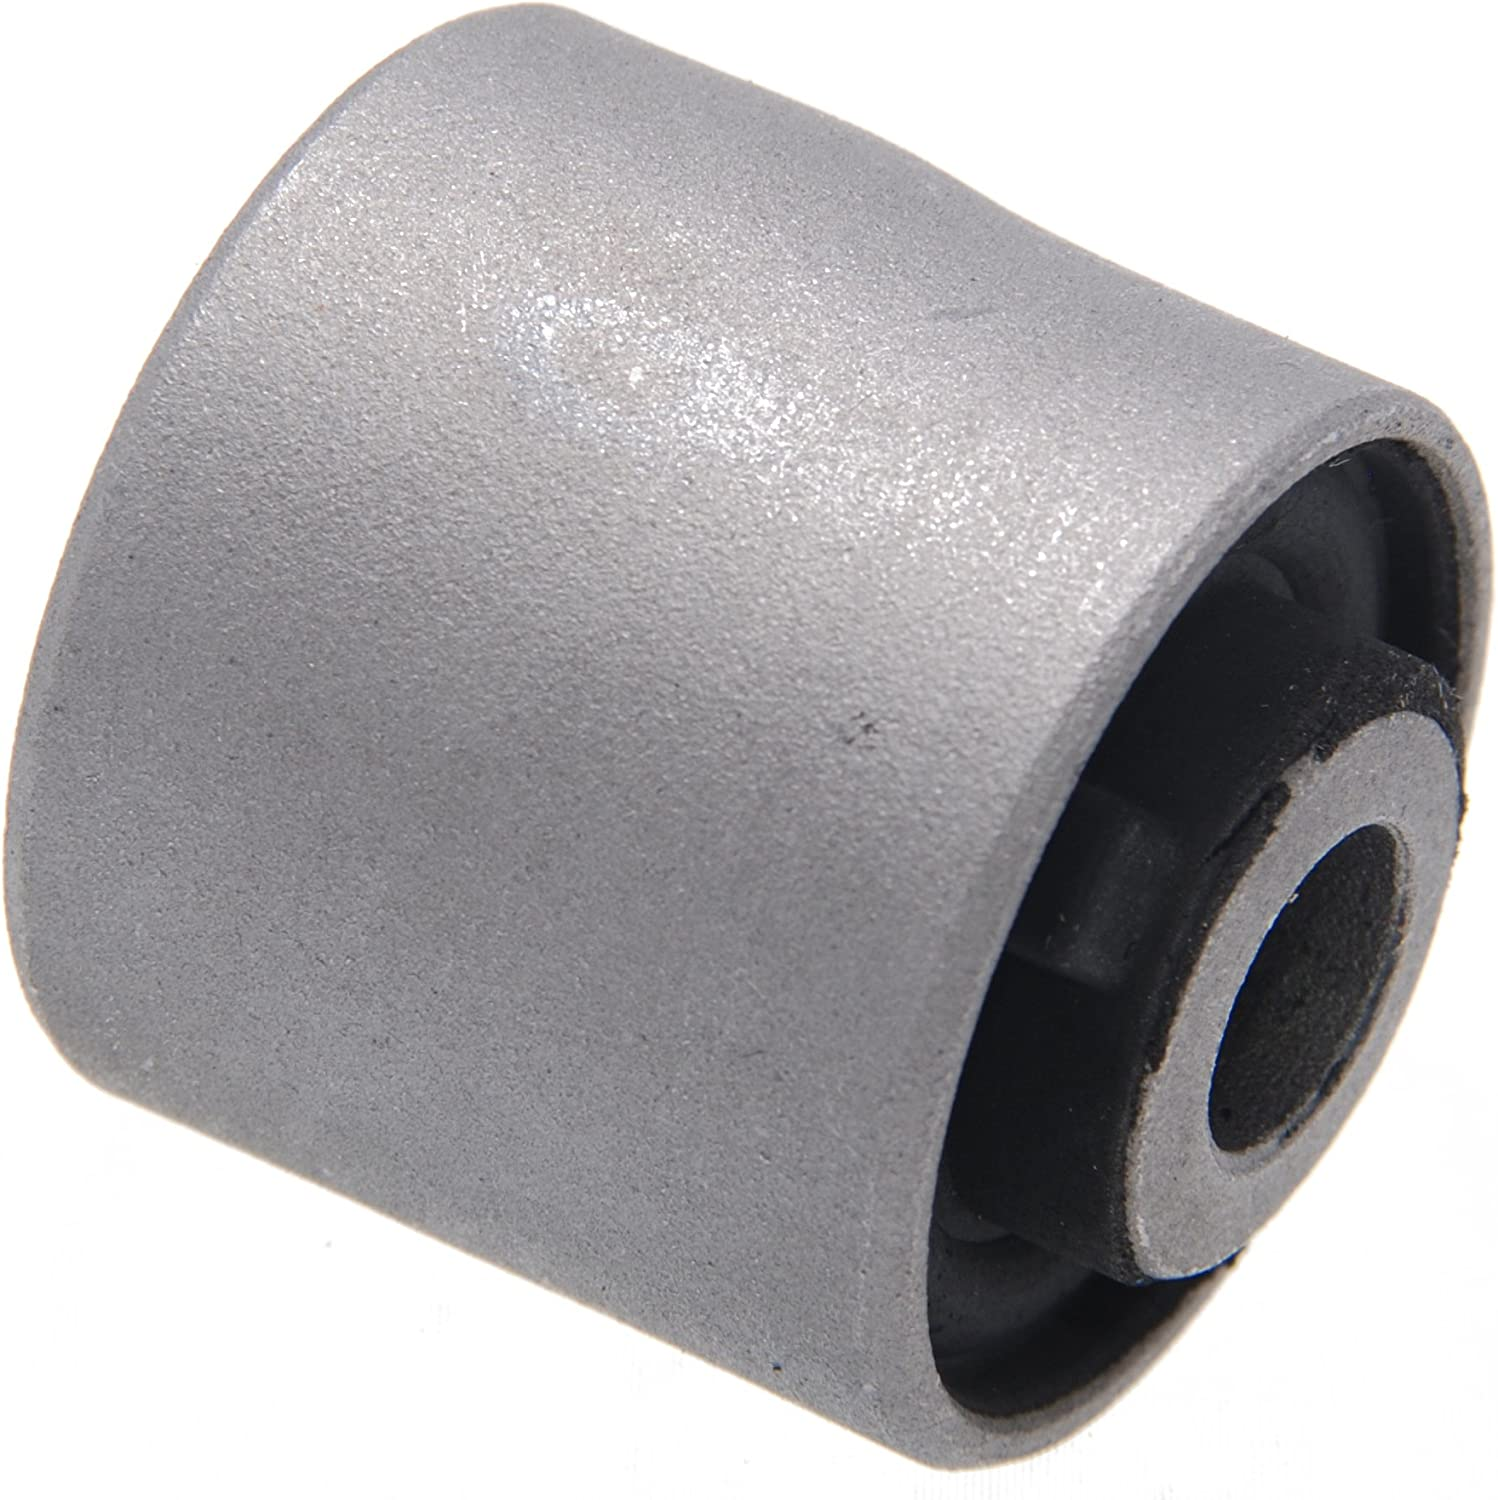 Arm Bushing for Lateral Control Arm Febest For Mitsubishi Mn101430